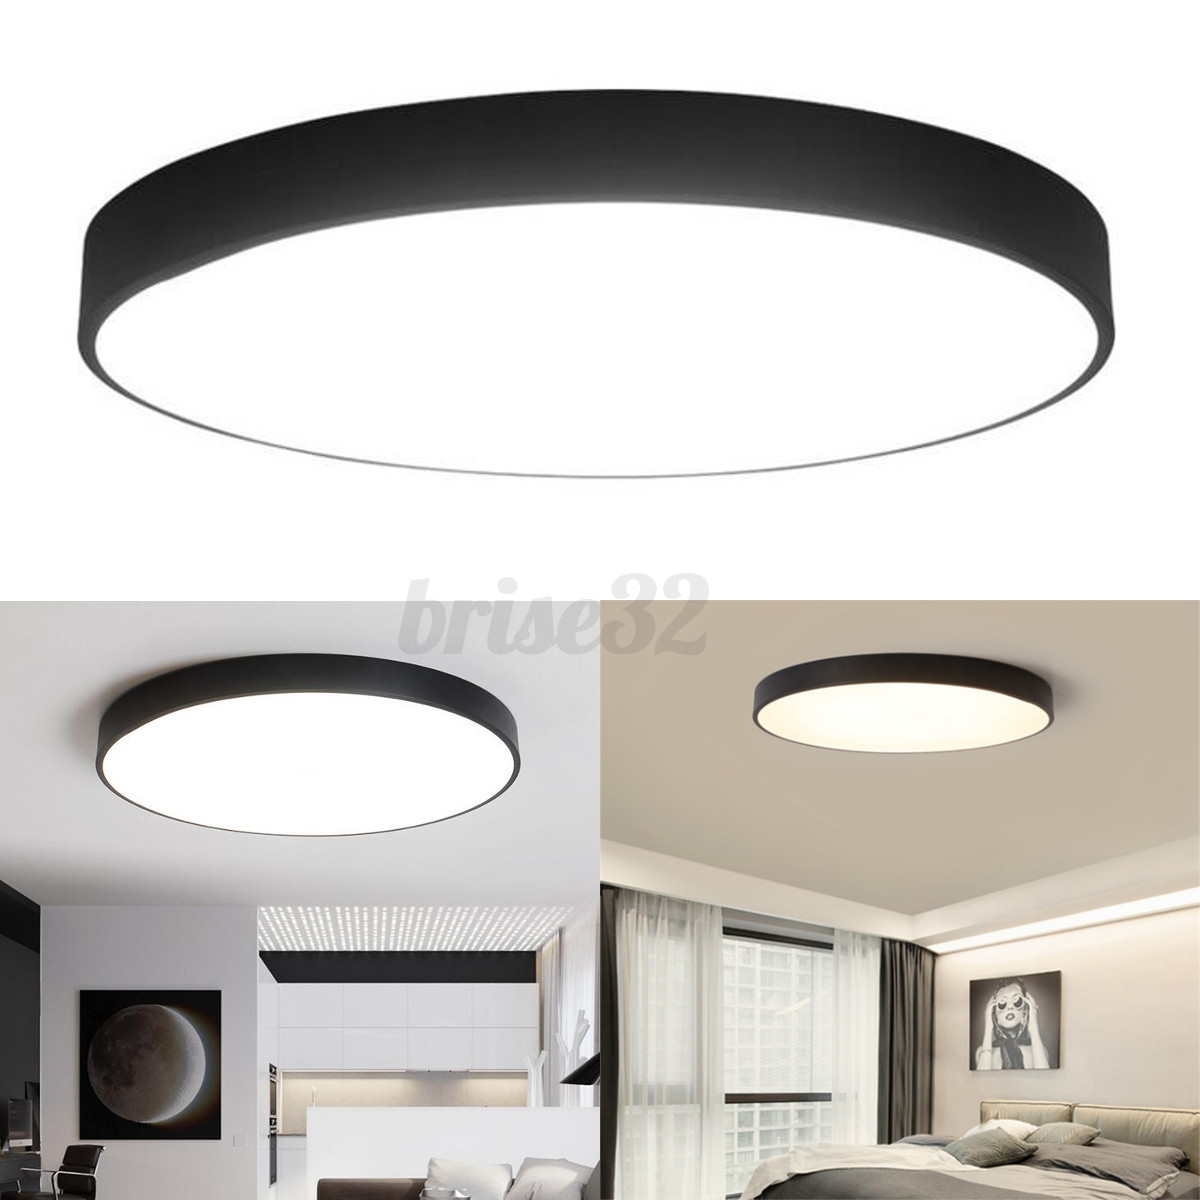 Round LED Ceiling Down Light Fixture Home Bedroom Living